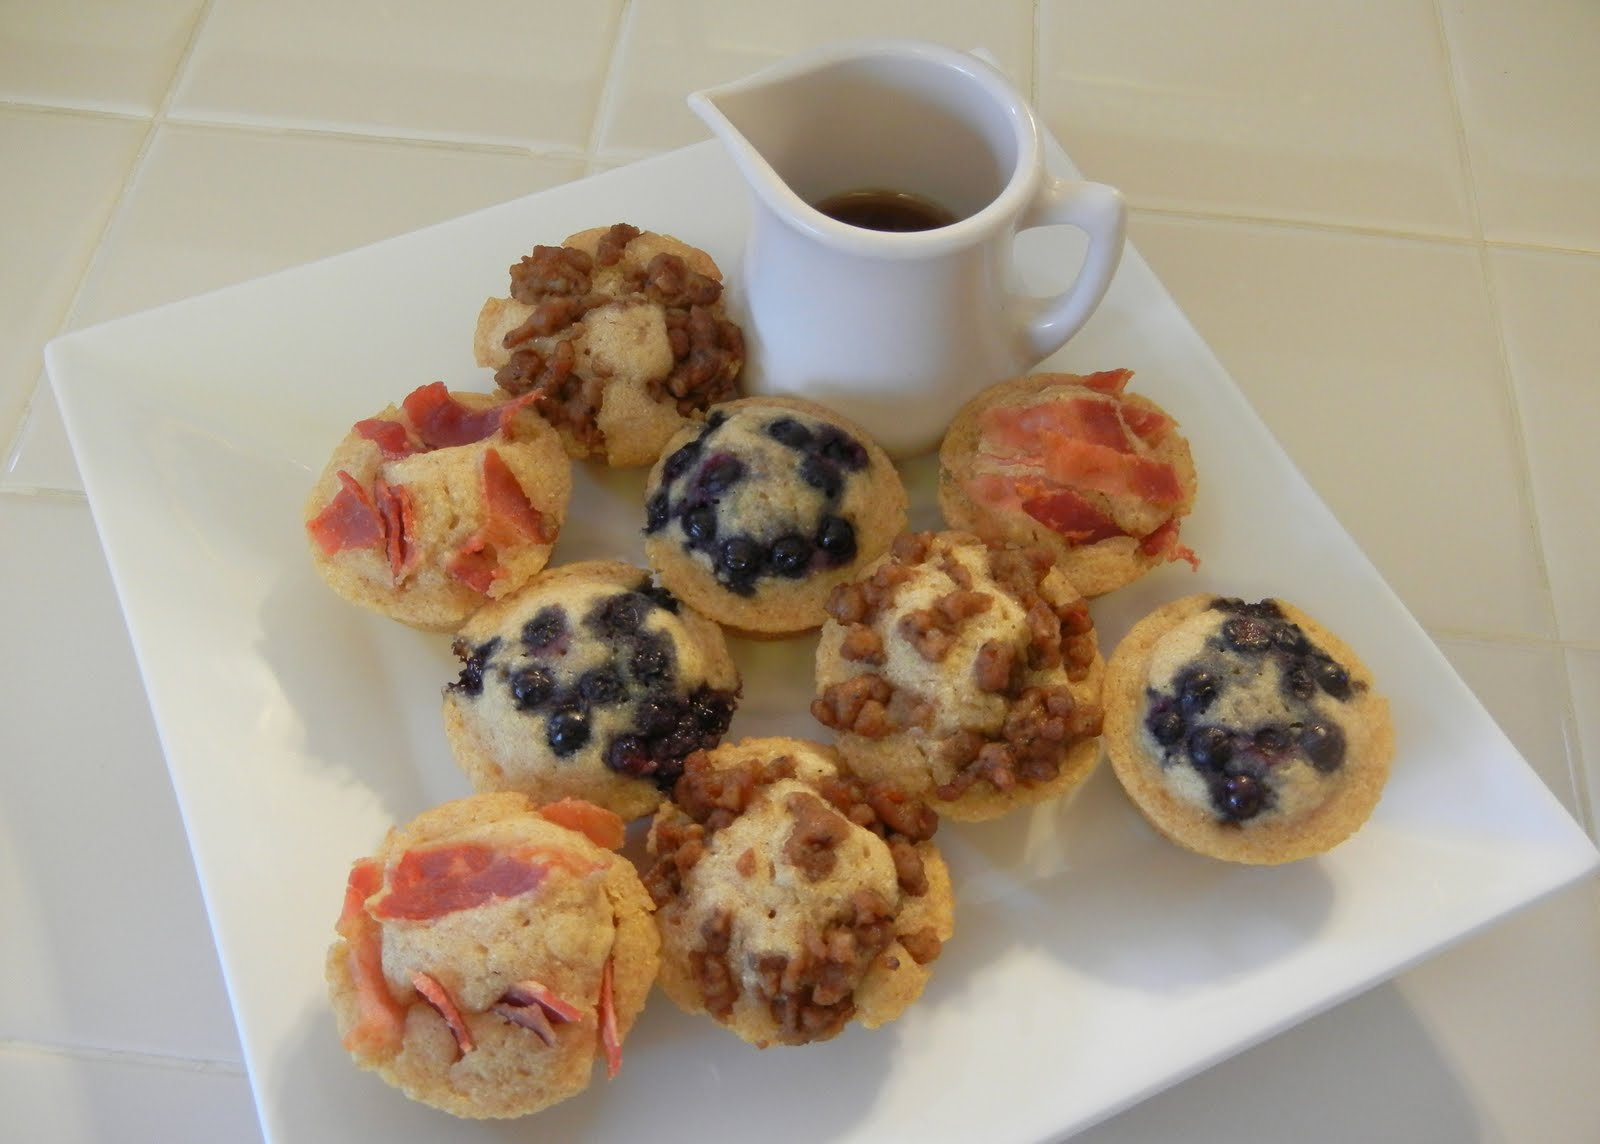 Theworldaccordingtoeggface post weight loss surgery menus a day in kid friendly grab and go portable diy brunch weight loss bariatric gastric bypass sugar free shellys pancake bites ccuart Gallery